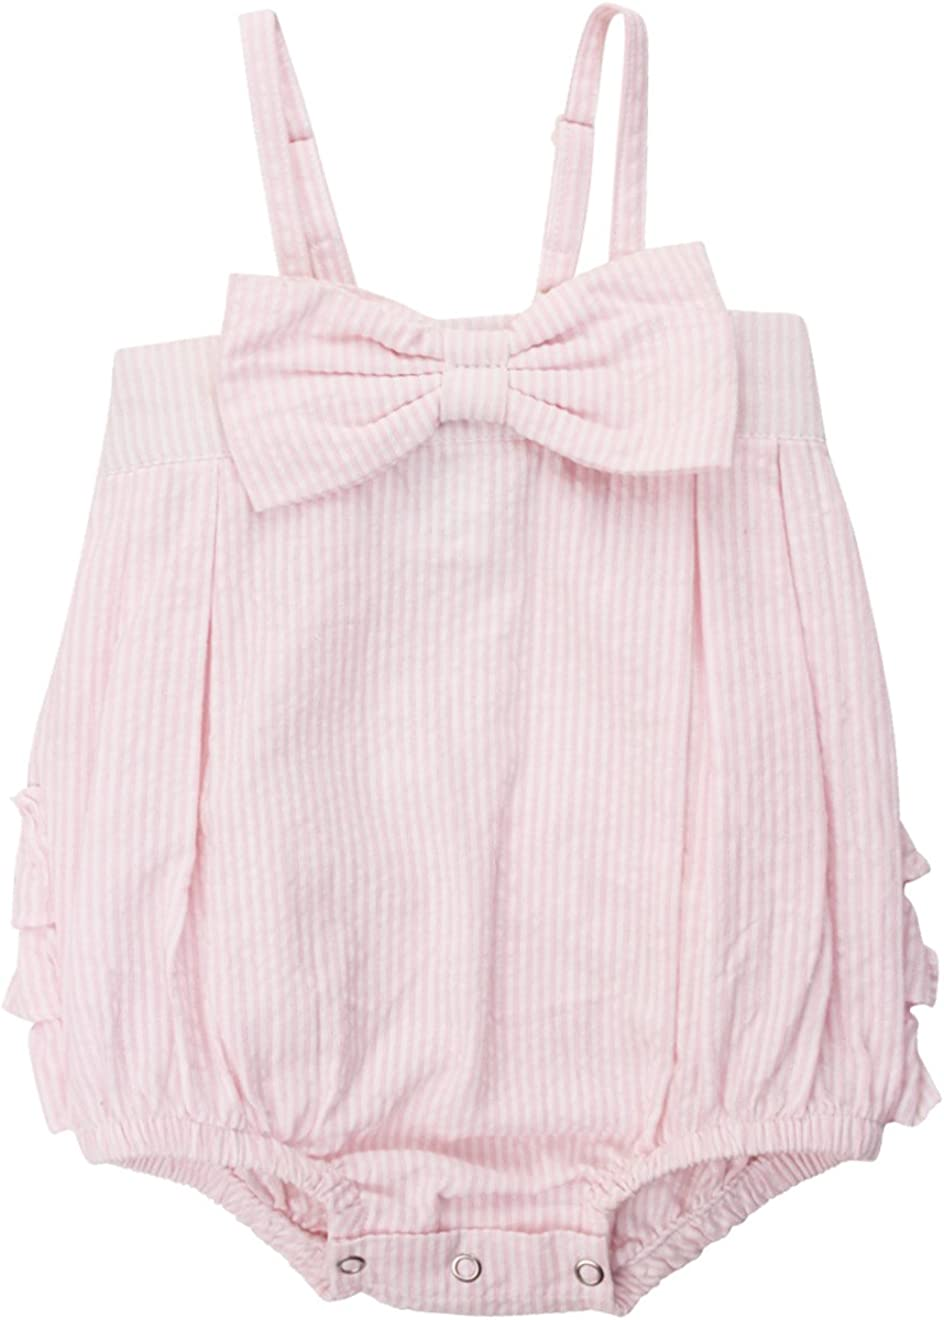 RuffleButts Baby/Toddler Girls Bow-Front Bubble Romper One Piece w/Ruffles 618A6Nr-zYL